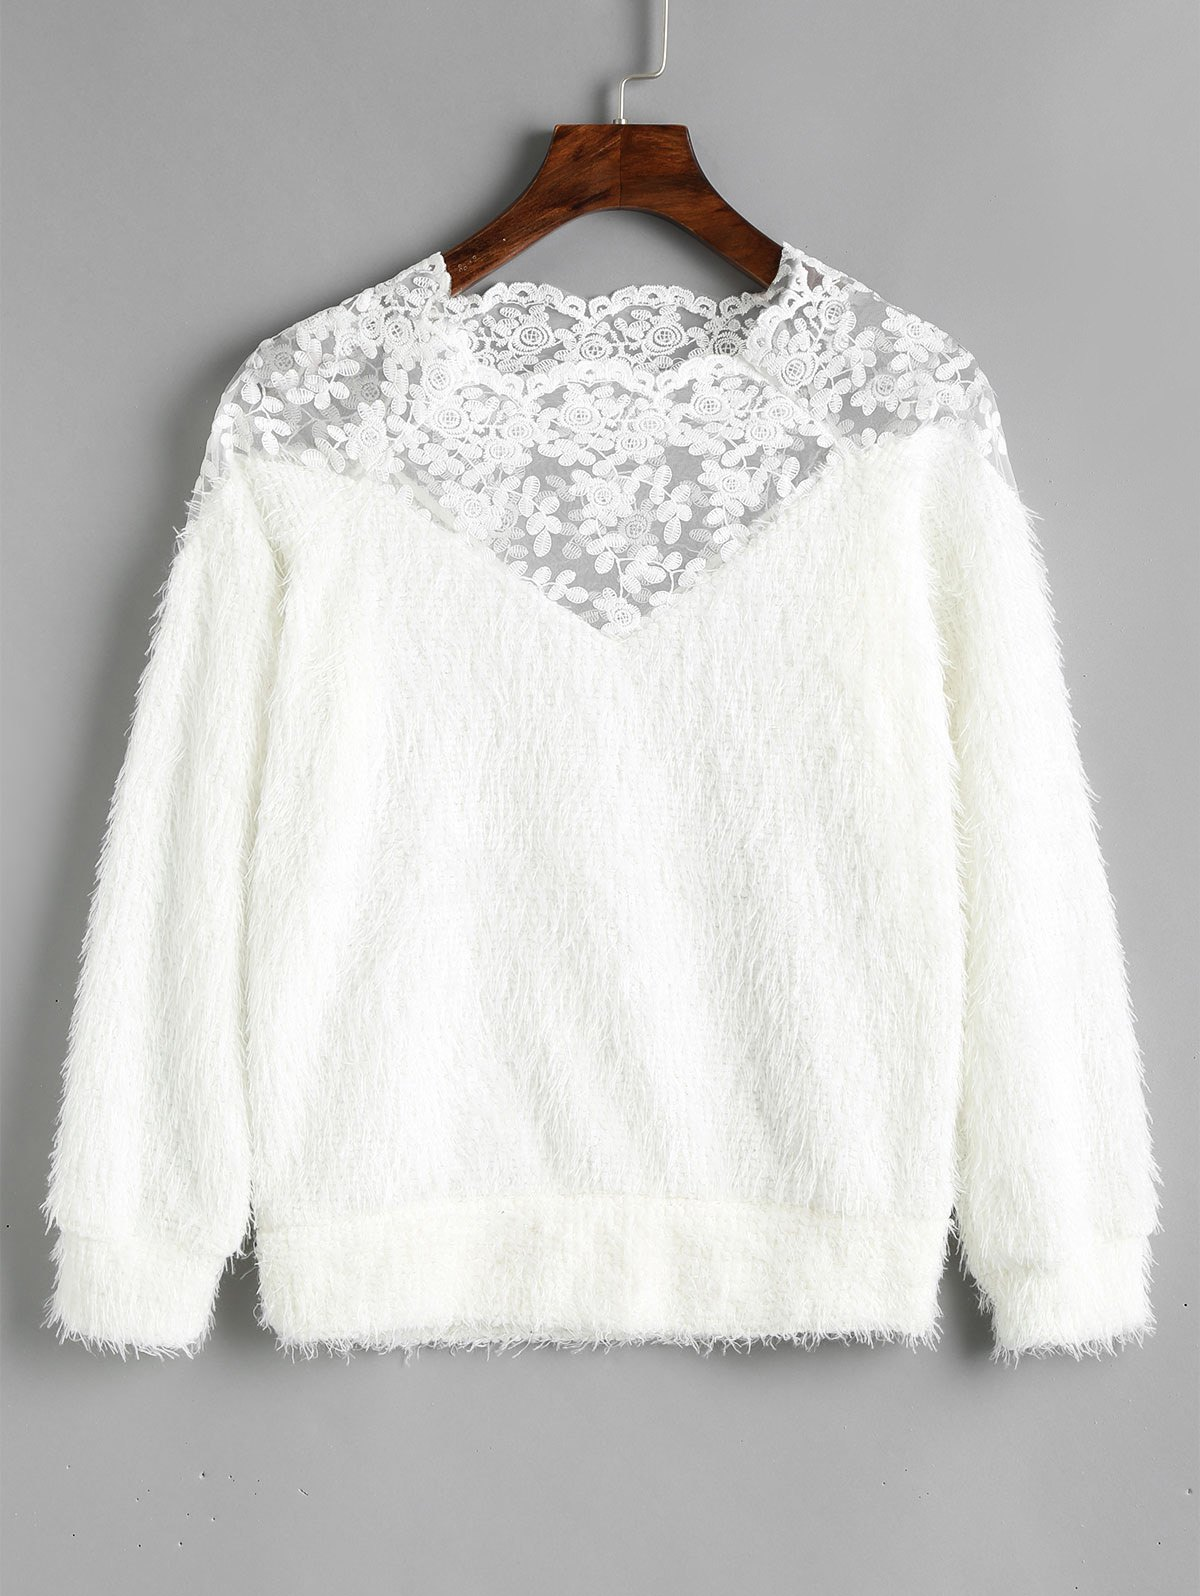 Textured Lace Panel Raglan Sleeve Sweatshirt - WHITE ONE SIZE